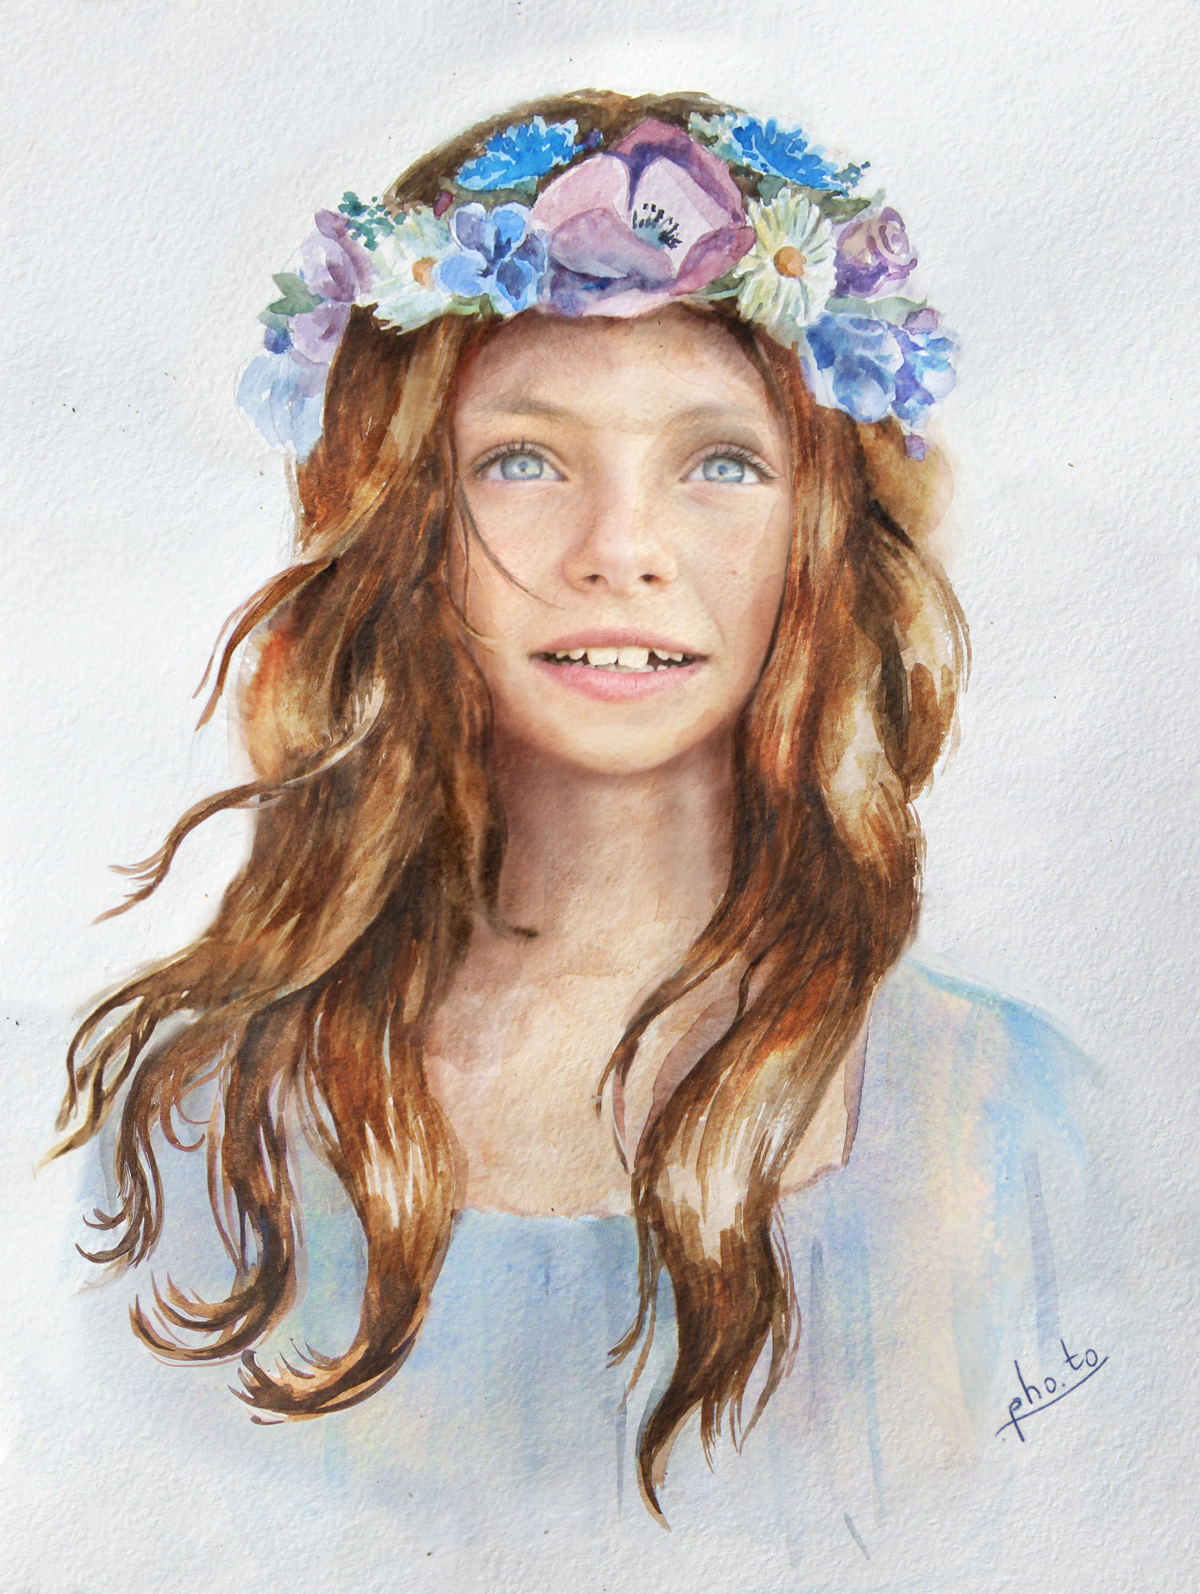 Put your face in a girl with flower crown painting template